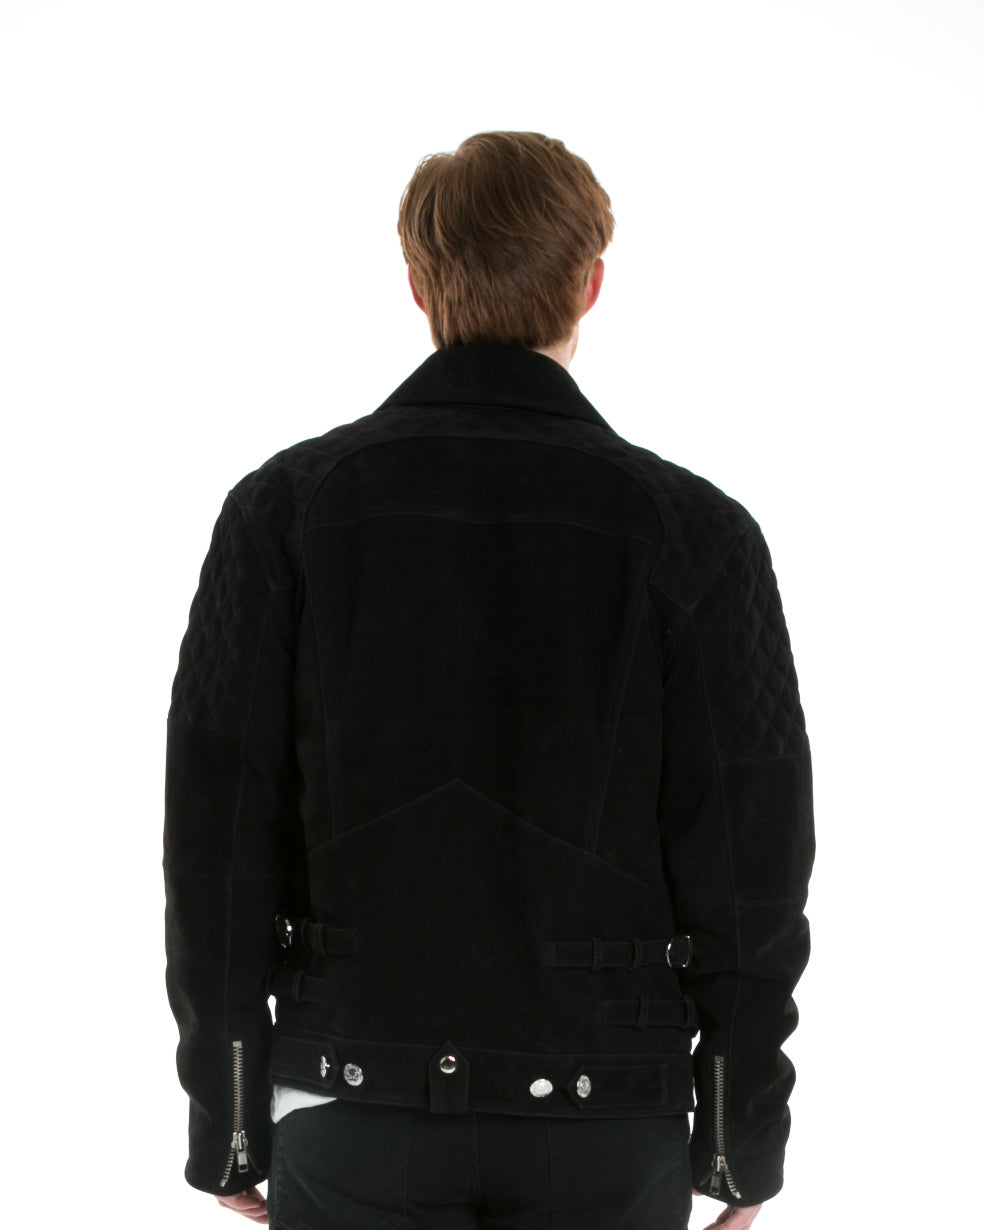 Back of male model wearing Onyx Leather jacket